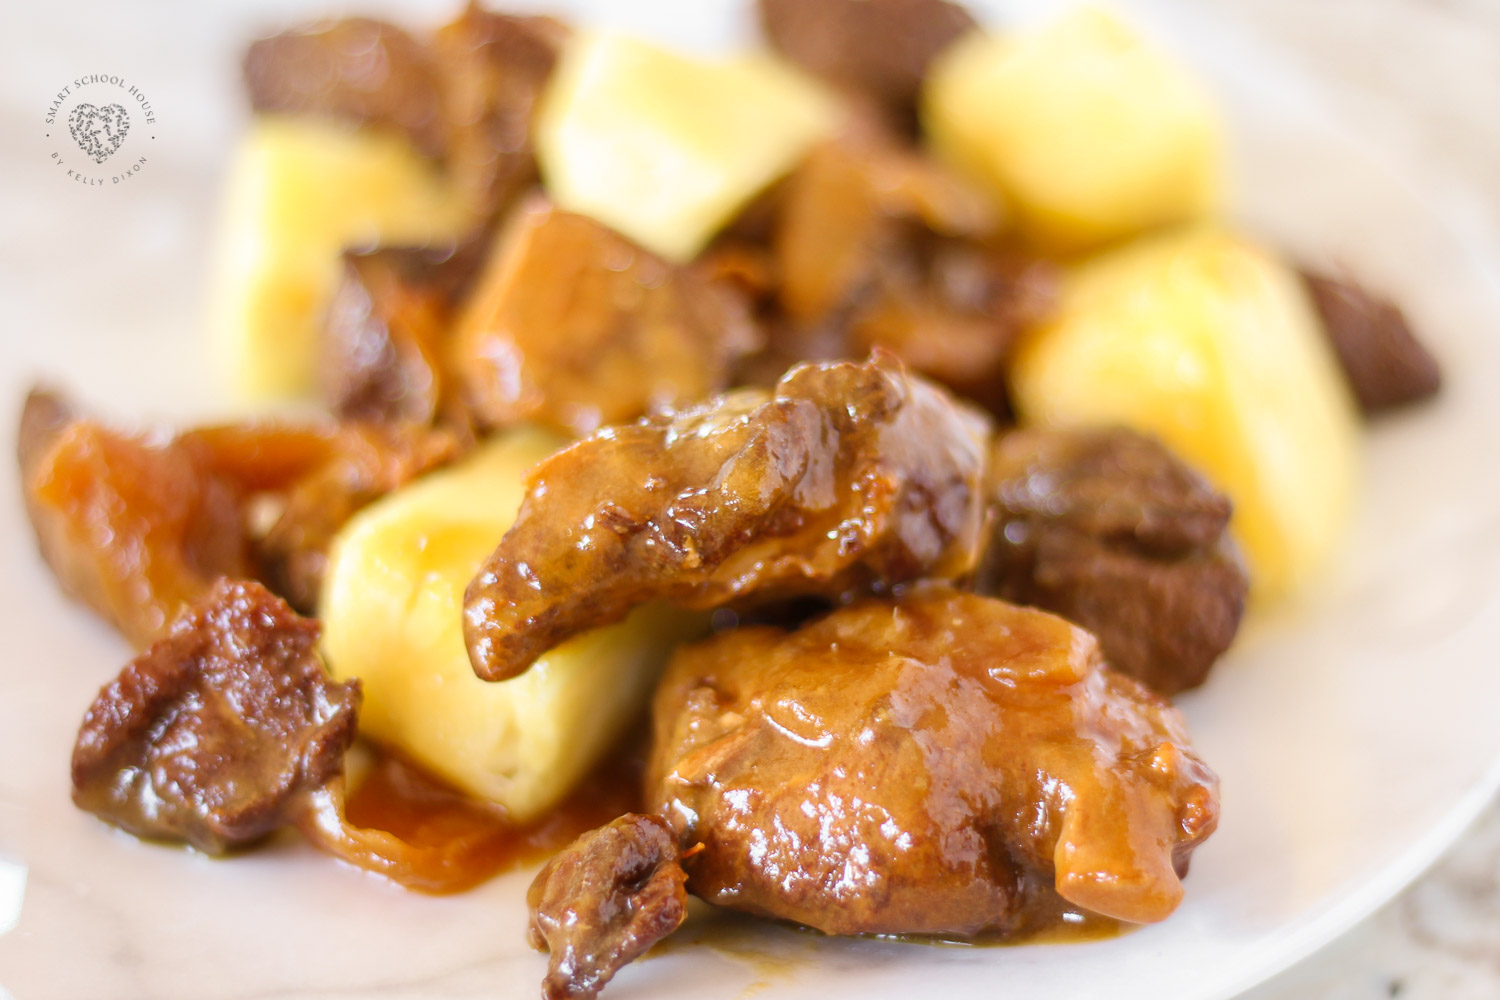 Sweet Hawaiian Crock Pot Chicken Recipe. Tender chicken smothered in a tropical glaze for a burst of pineapple flavor in every bite! Cook on low in Crock Pot 6-8 hours, that's it! Done!